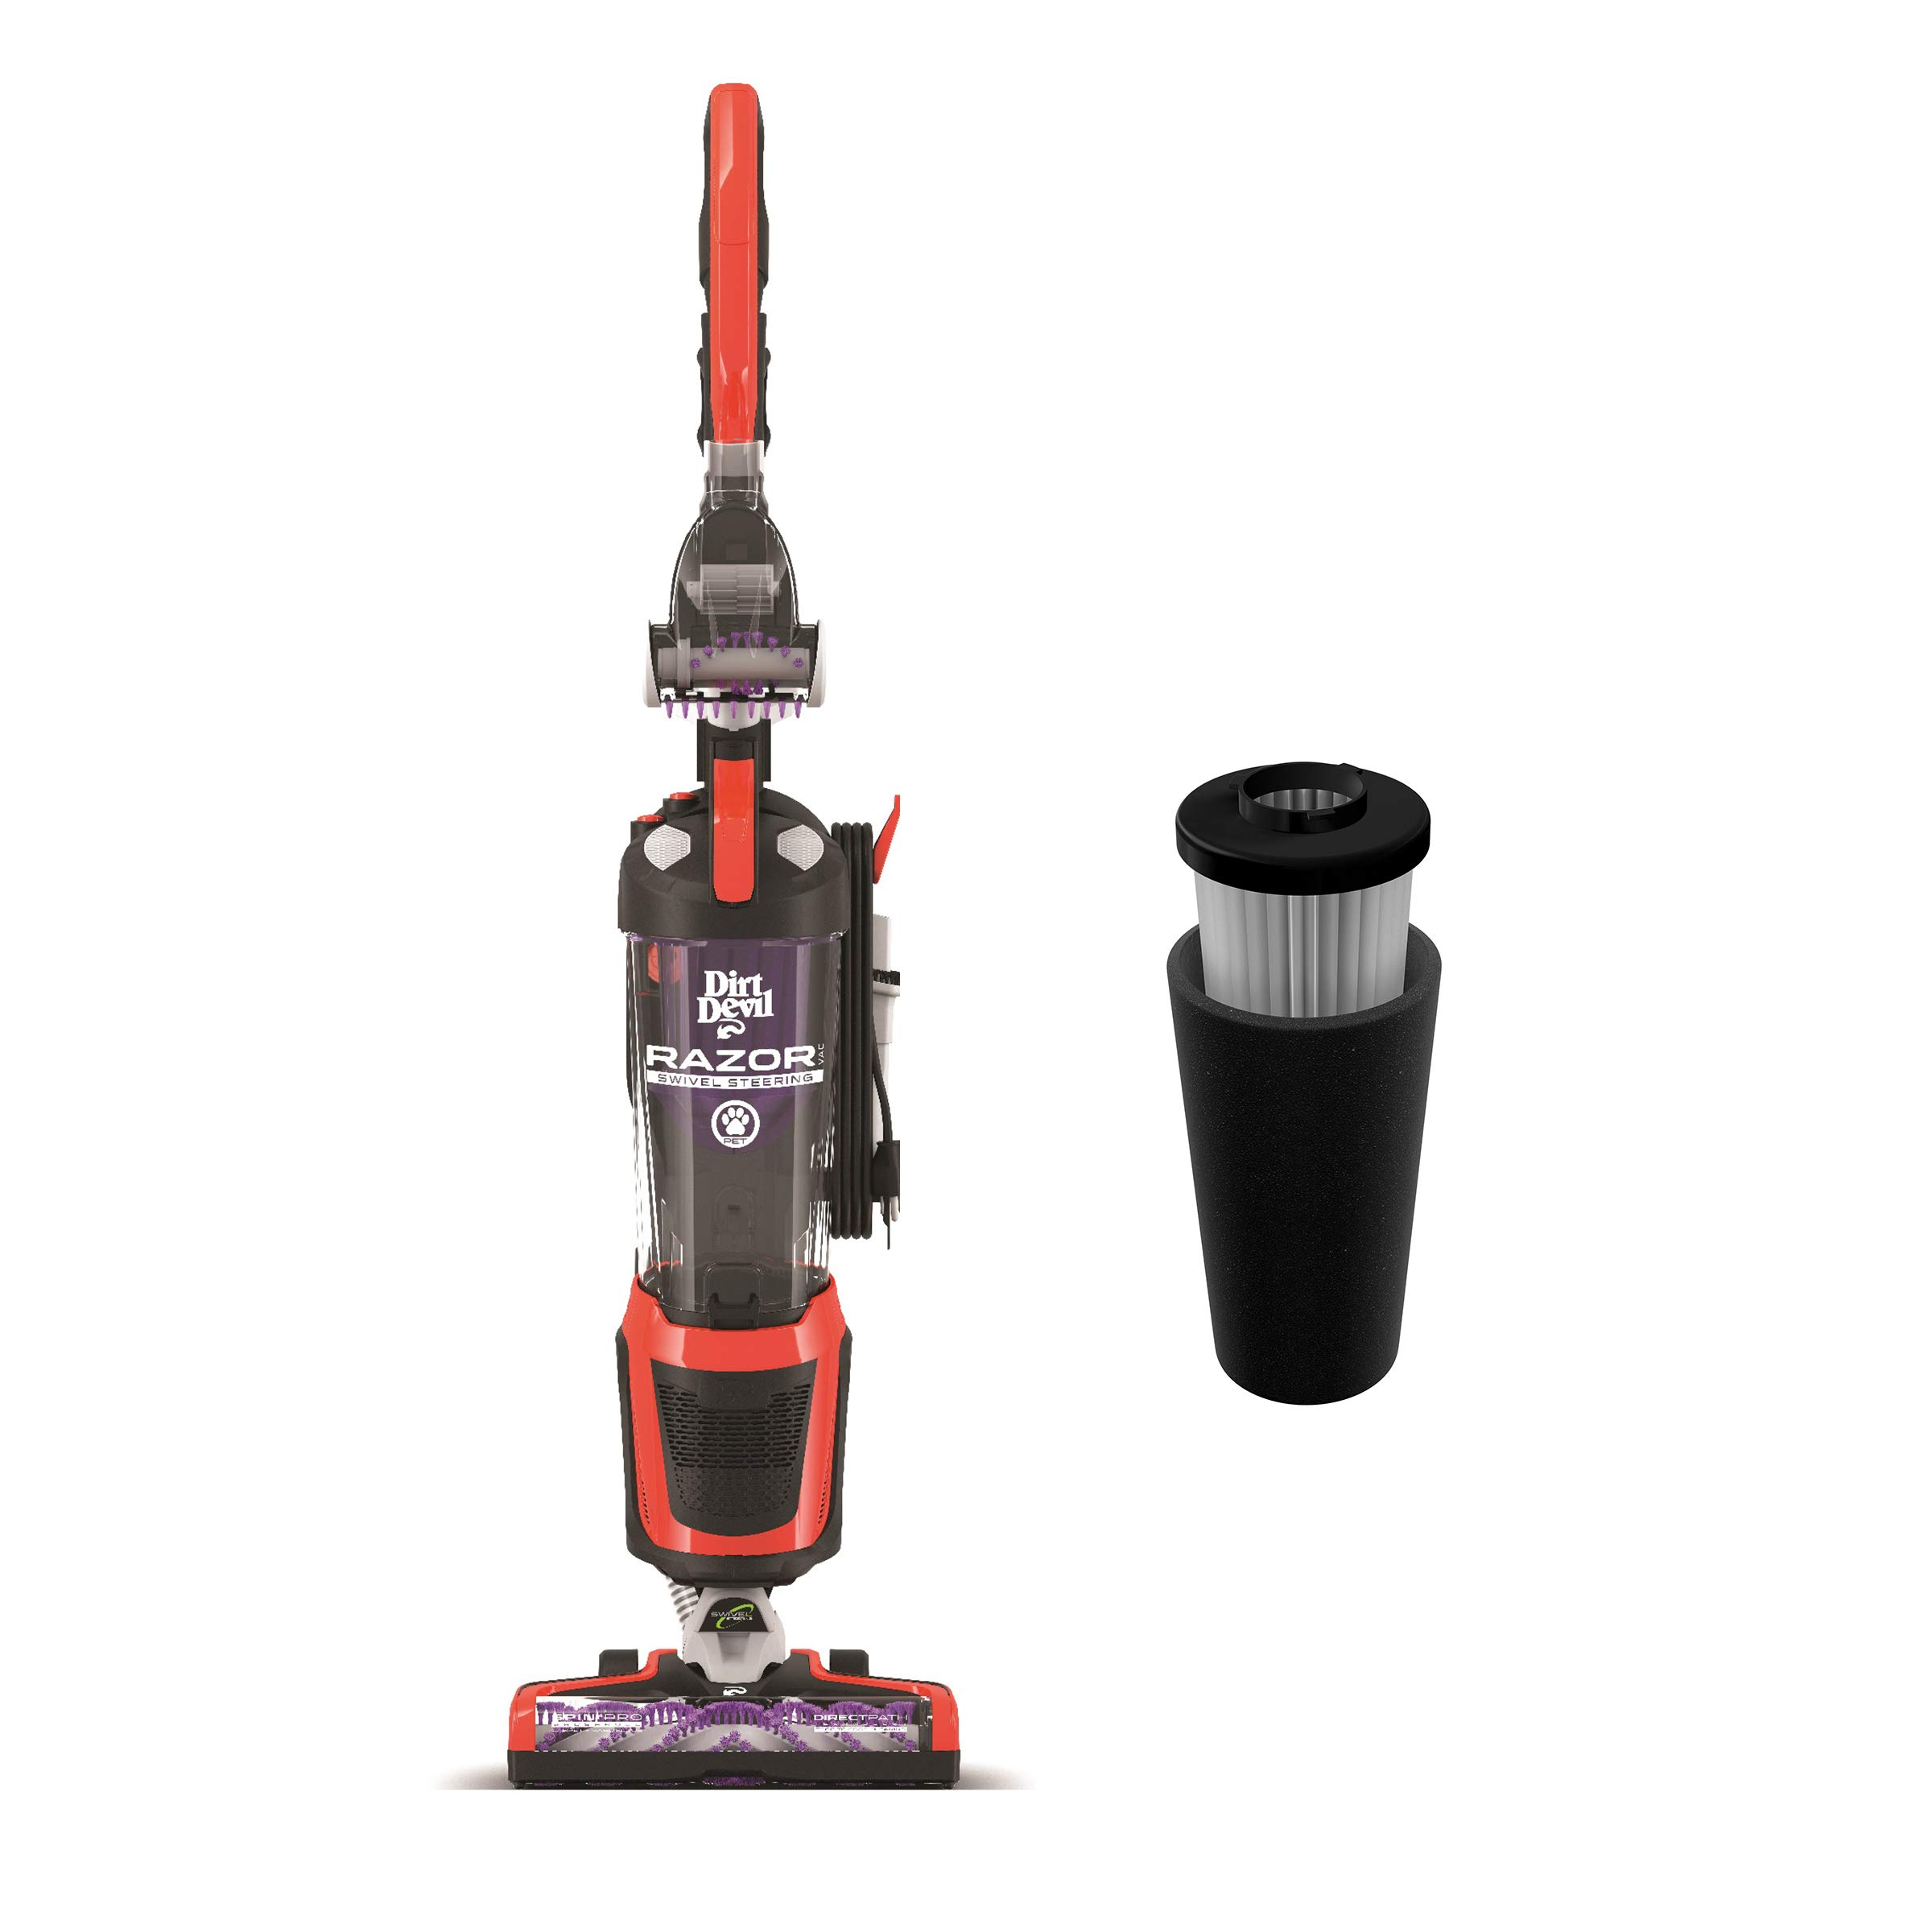 Dirt Devil Razor Pet Steerable Bagless Upright Vacuum with Dirt Devil Endura Filter, Odor Trapping Replacement Filter by Dirt Devil